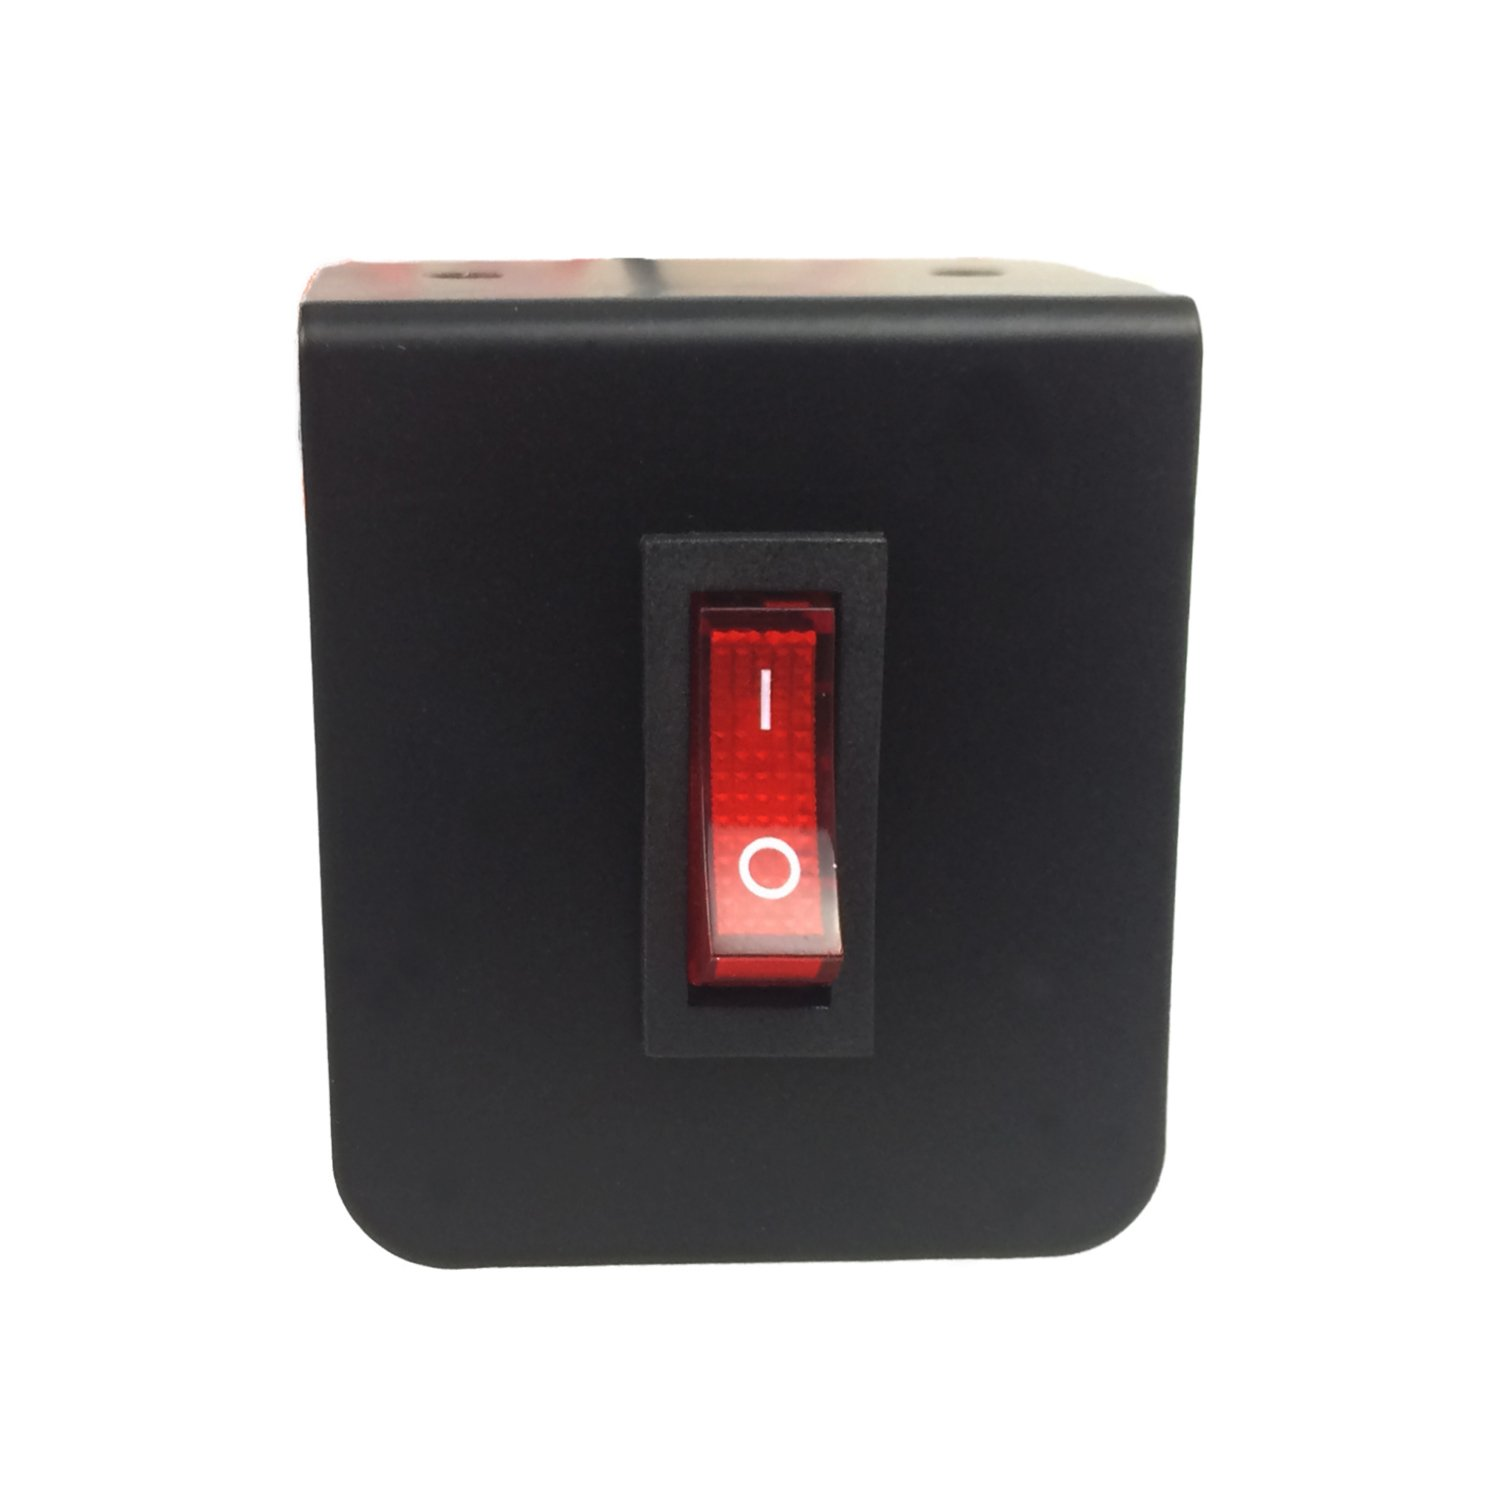 Abrams Taurus Premium 12V Switch Box Panel - (4) ON/OFF Rocker Switch with LED Light & (1) Momentary Switch Plate - 2 x 15 Amp Inline Fuse - Dimensions: 5.74'L x 2.2'H x 1.57'D